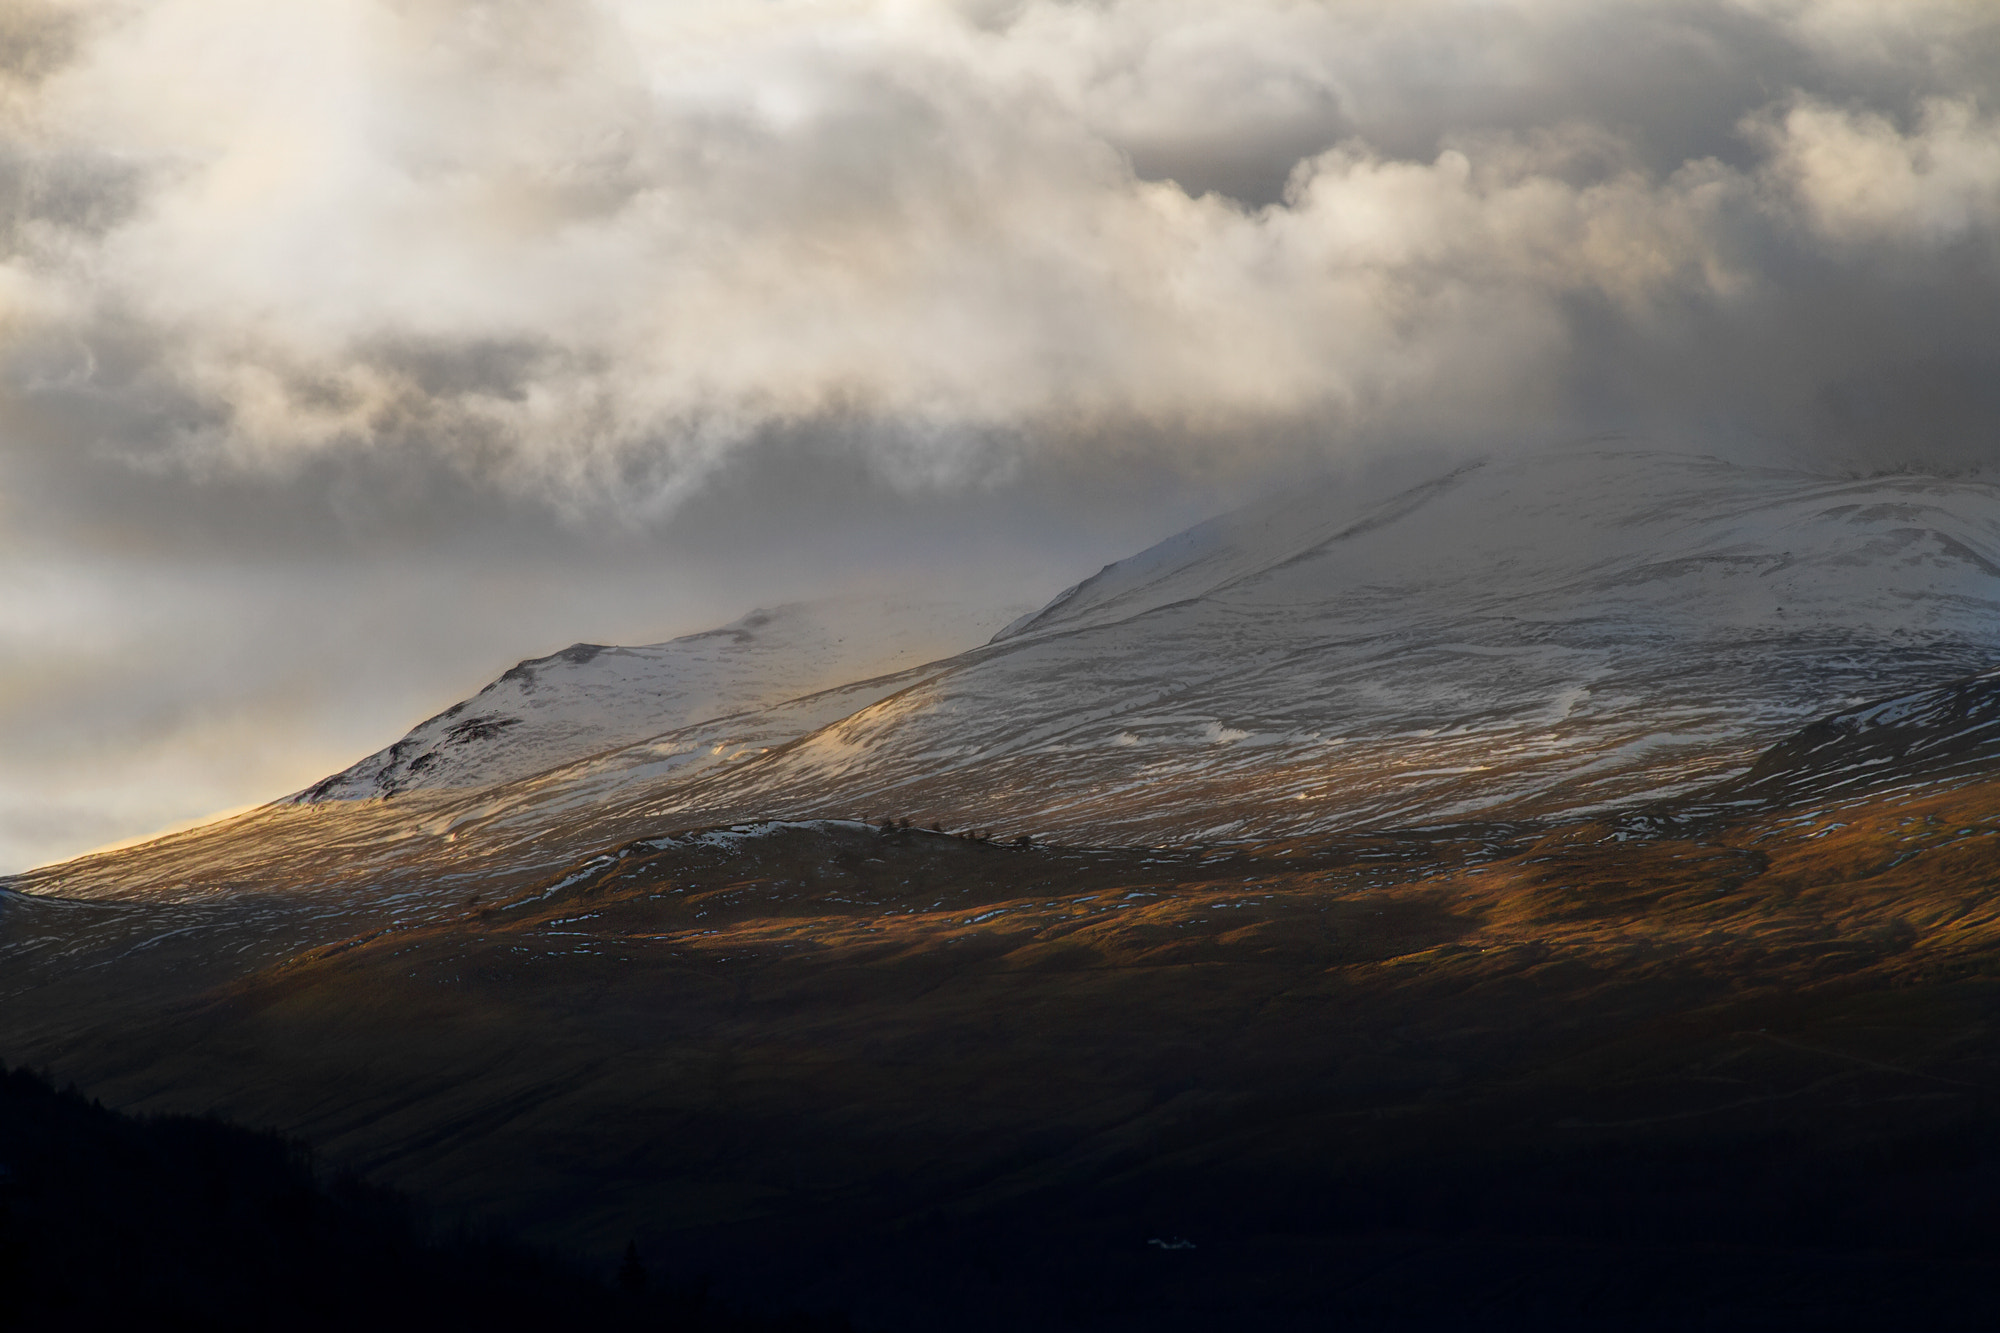 Photograph Ben Lawers by Alex Steven on 500px